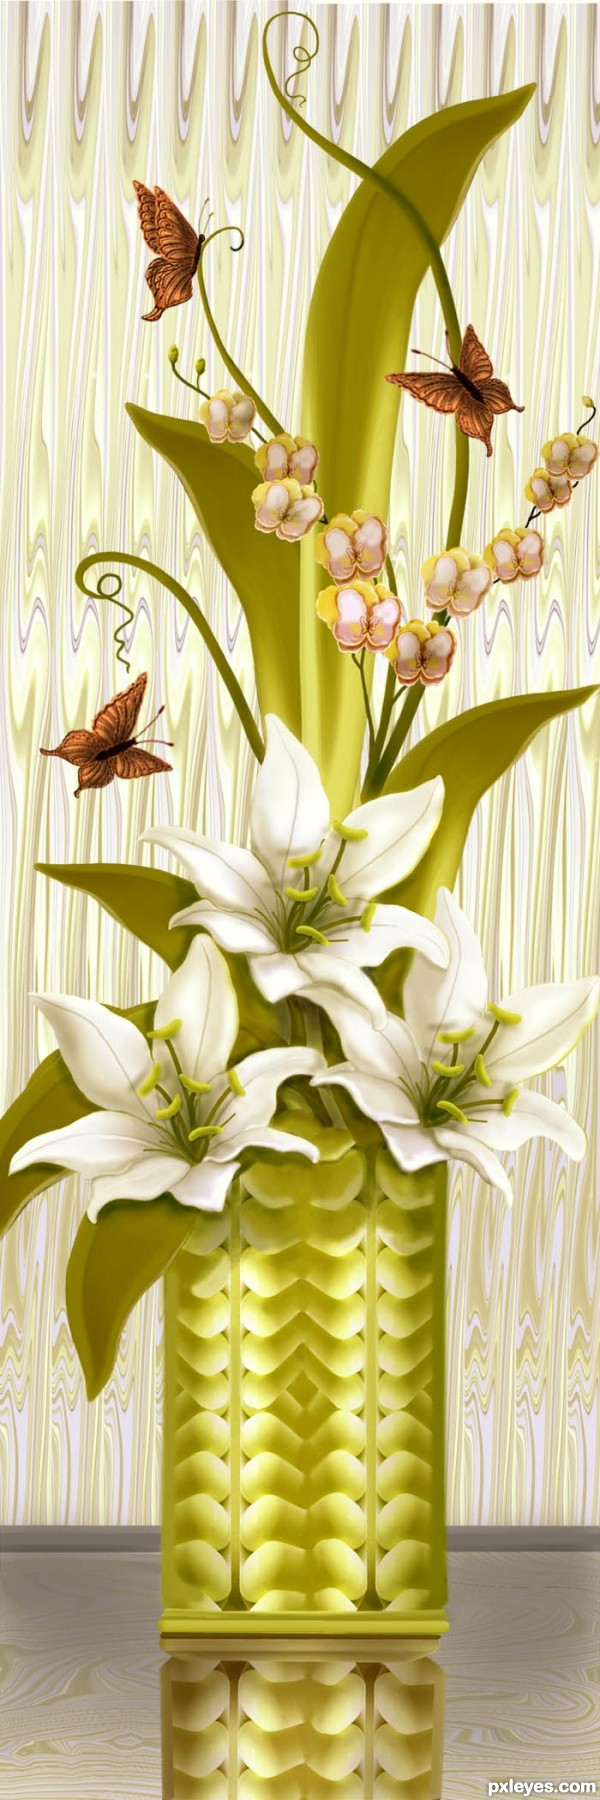 Lilies in Crystal  photoshop picture